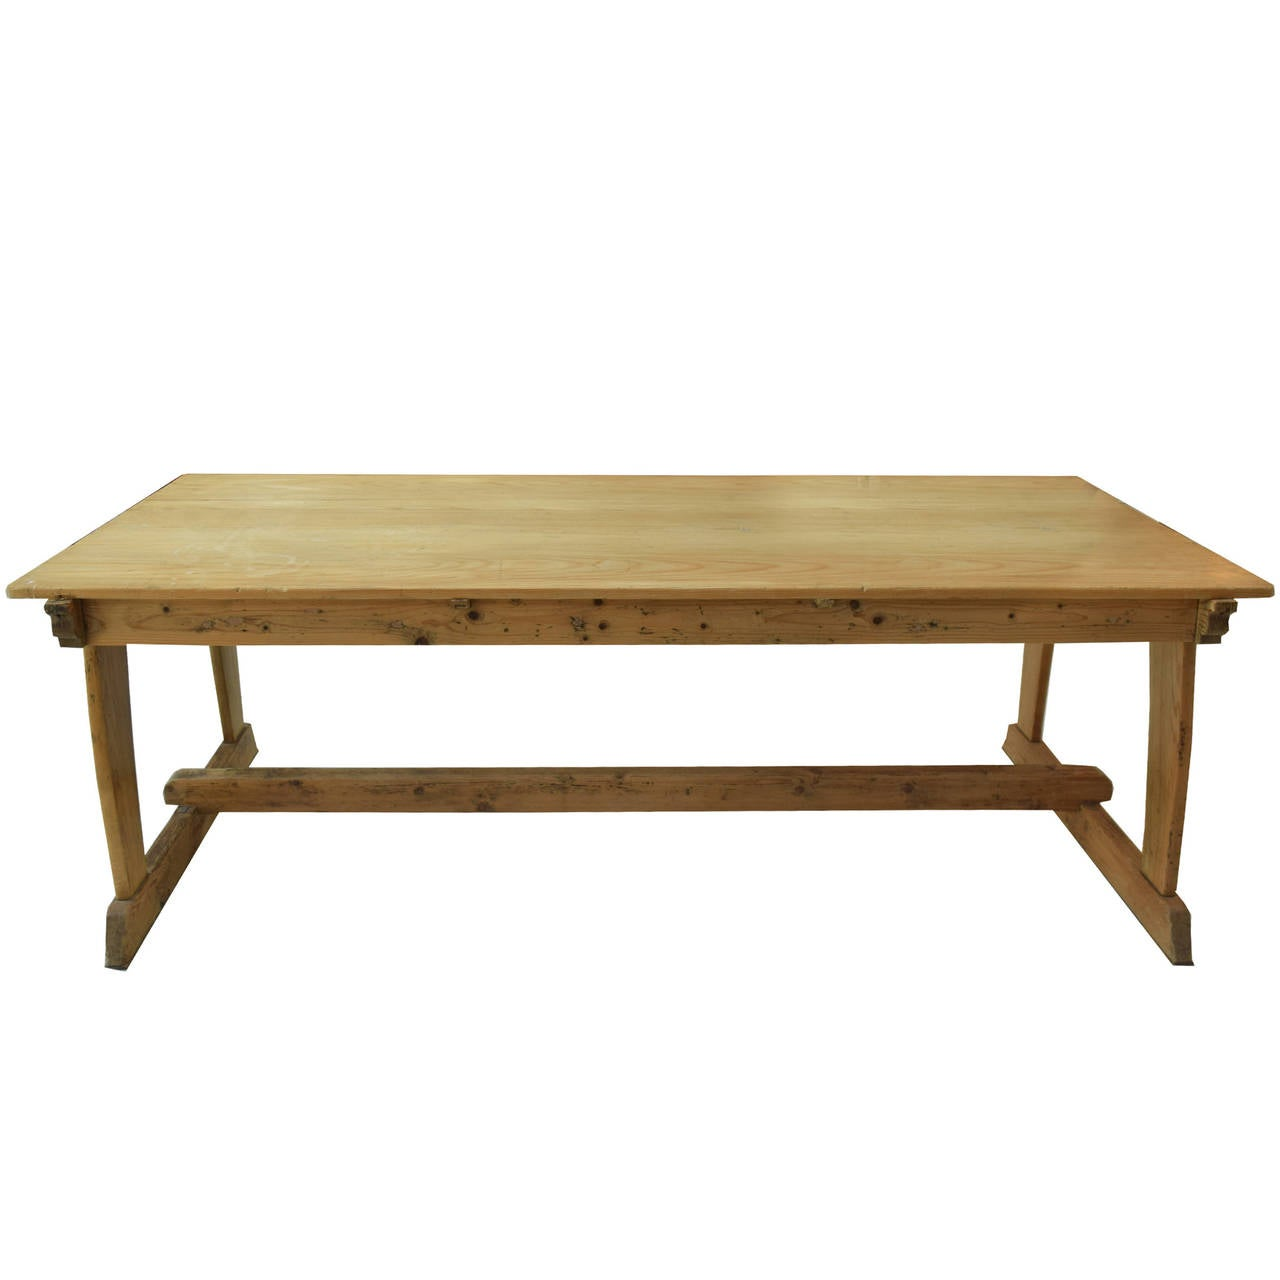 Trestle table, early 20th century